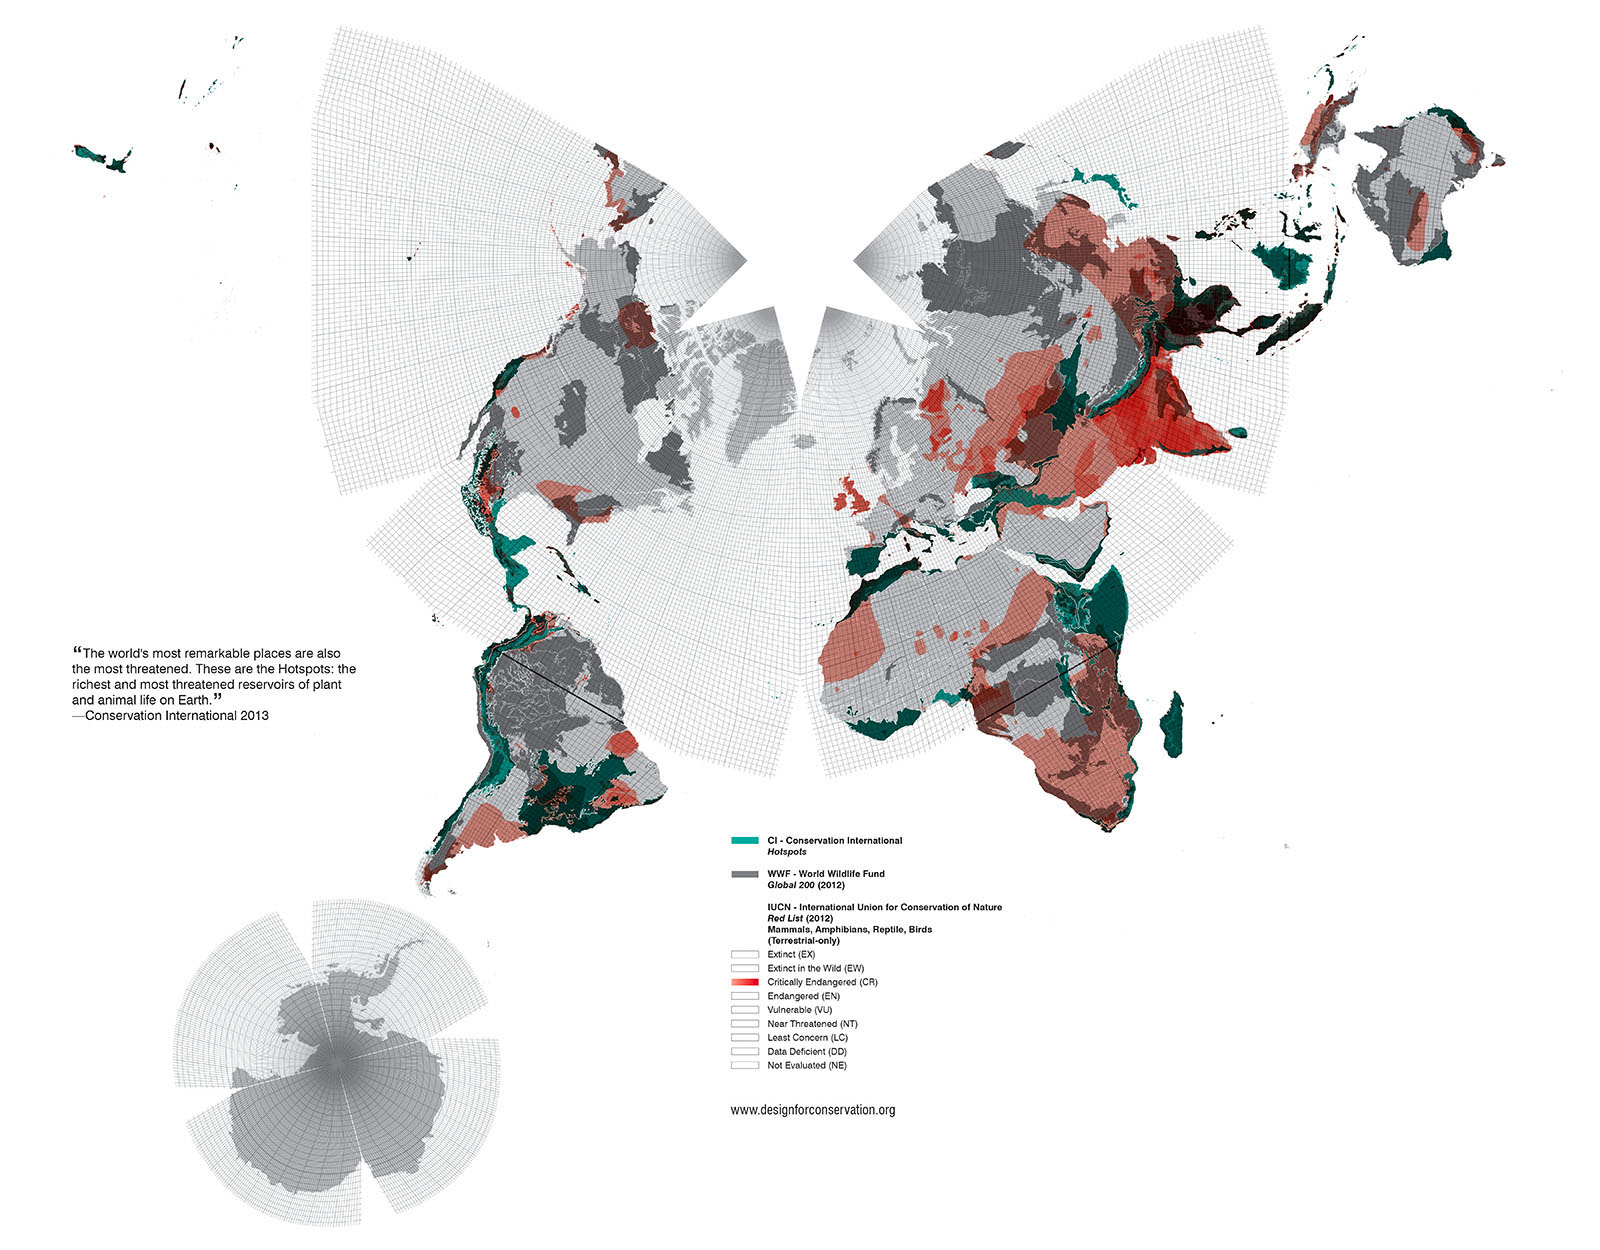 Global Biodiversity Regions, as declared by Conservation International, World Wide Fund for Nature, and International Union for Conservation of Nature.